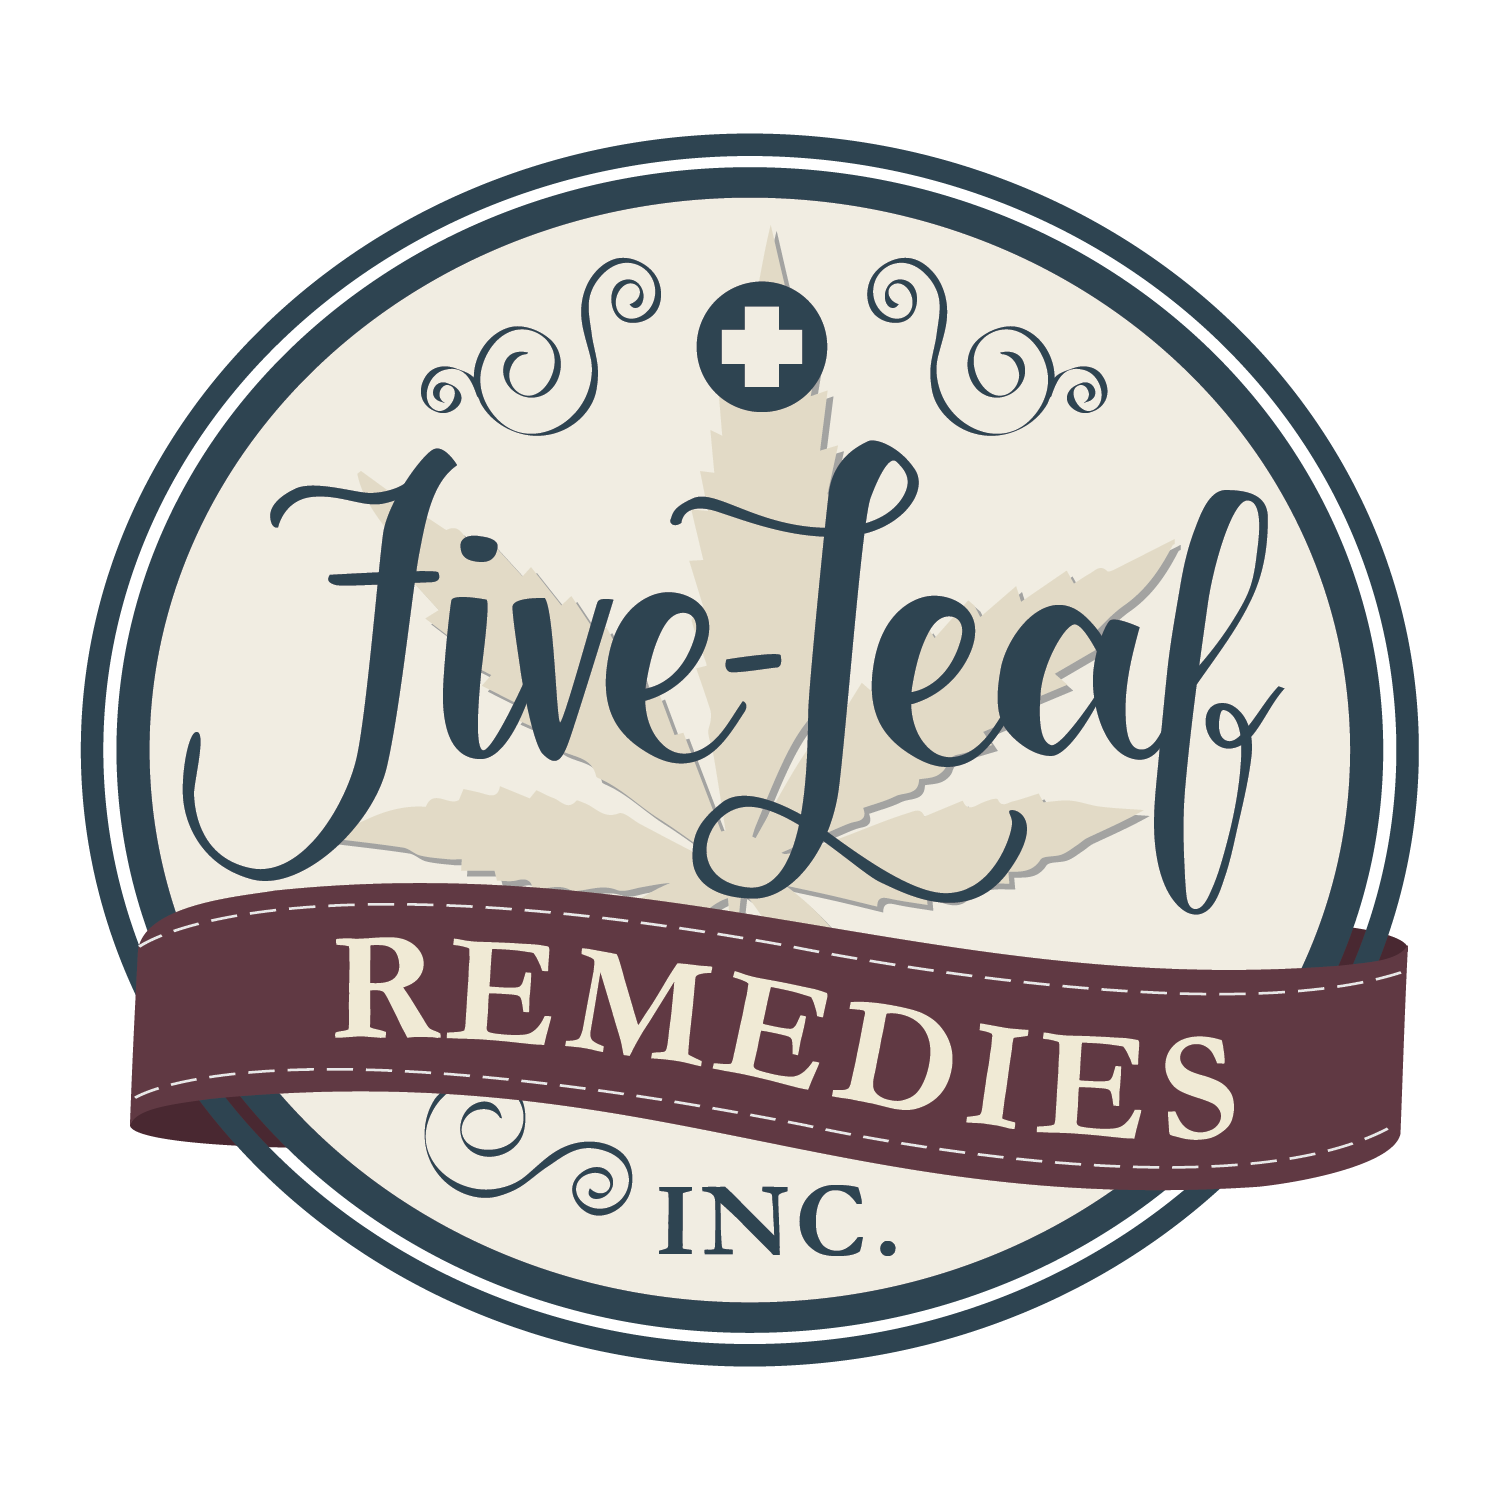 Five Leaf Remedies